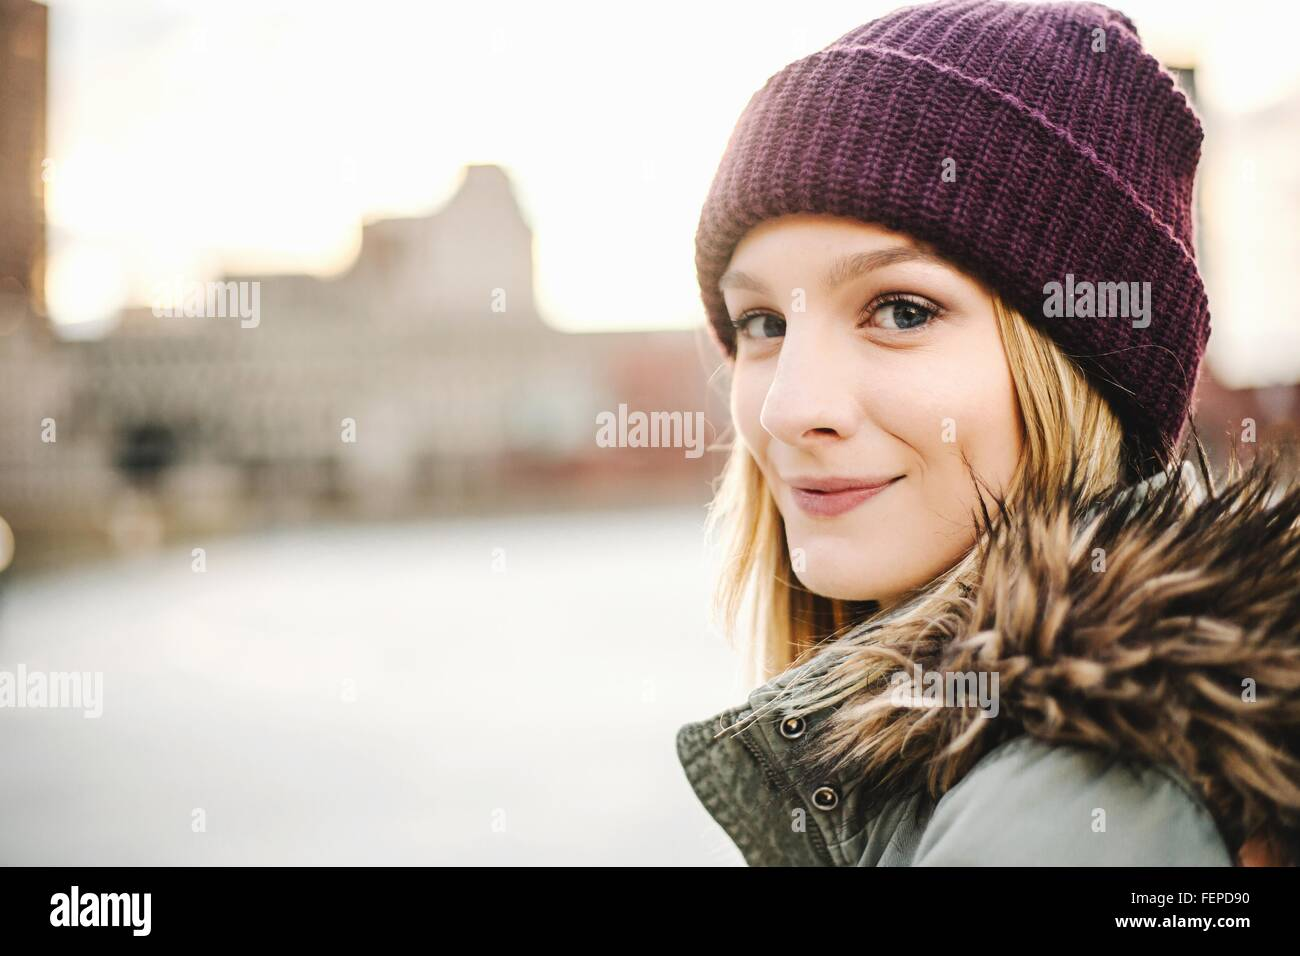 Portrait of young woman wearing knitted hat and fur hood - Stock Image